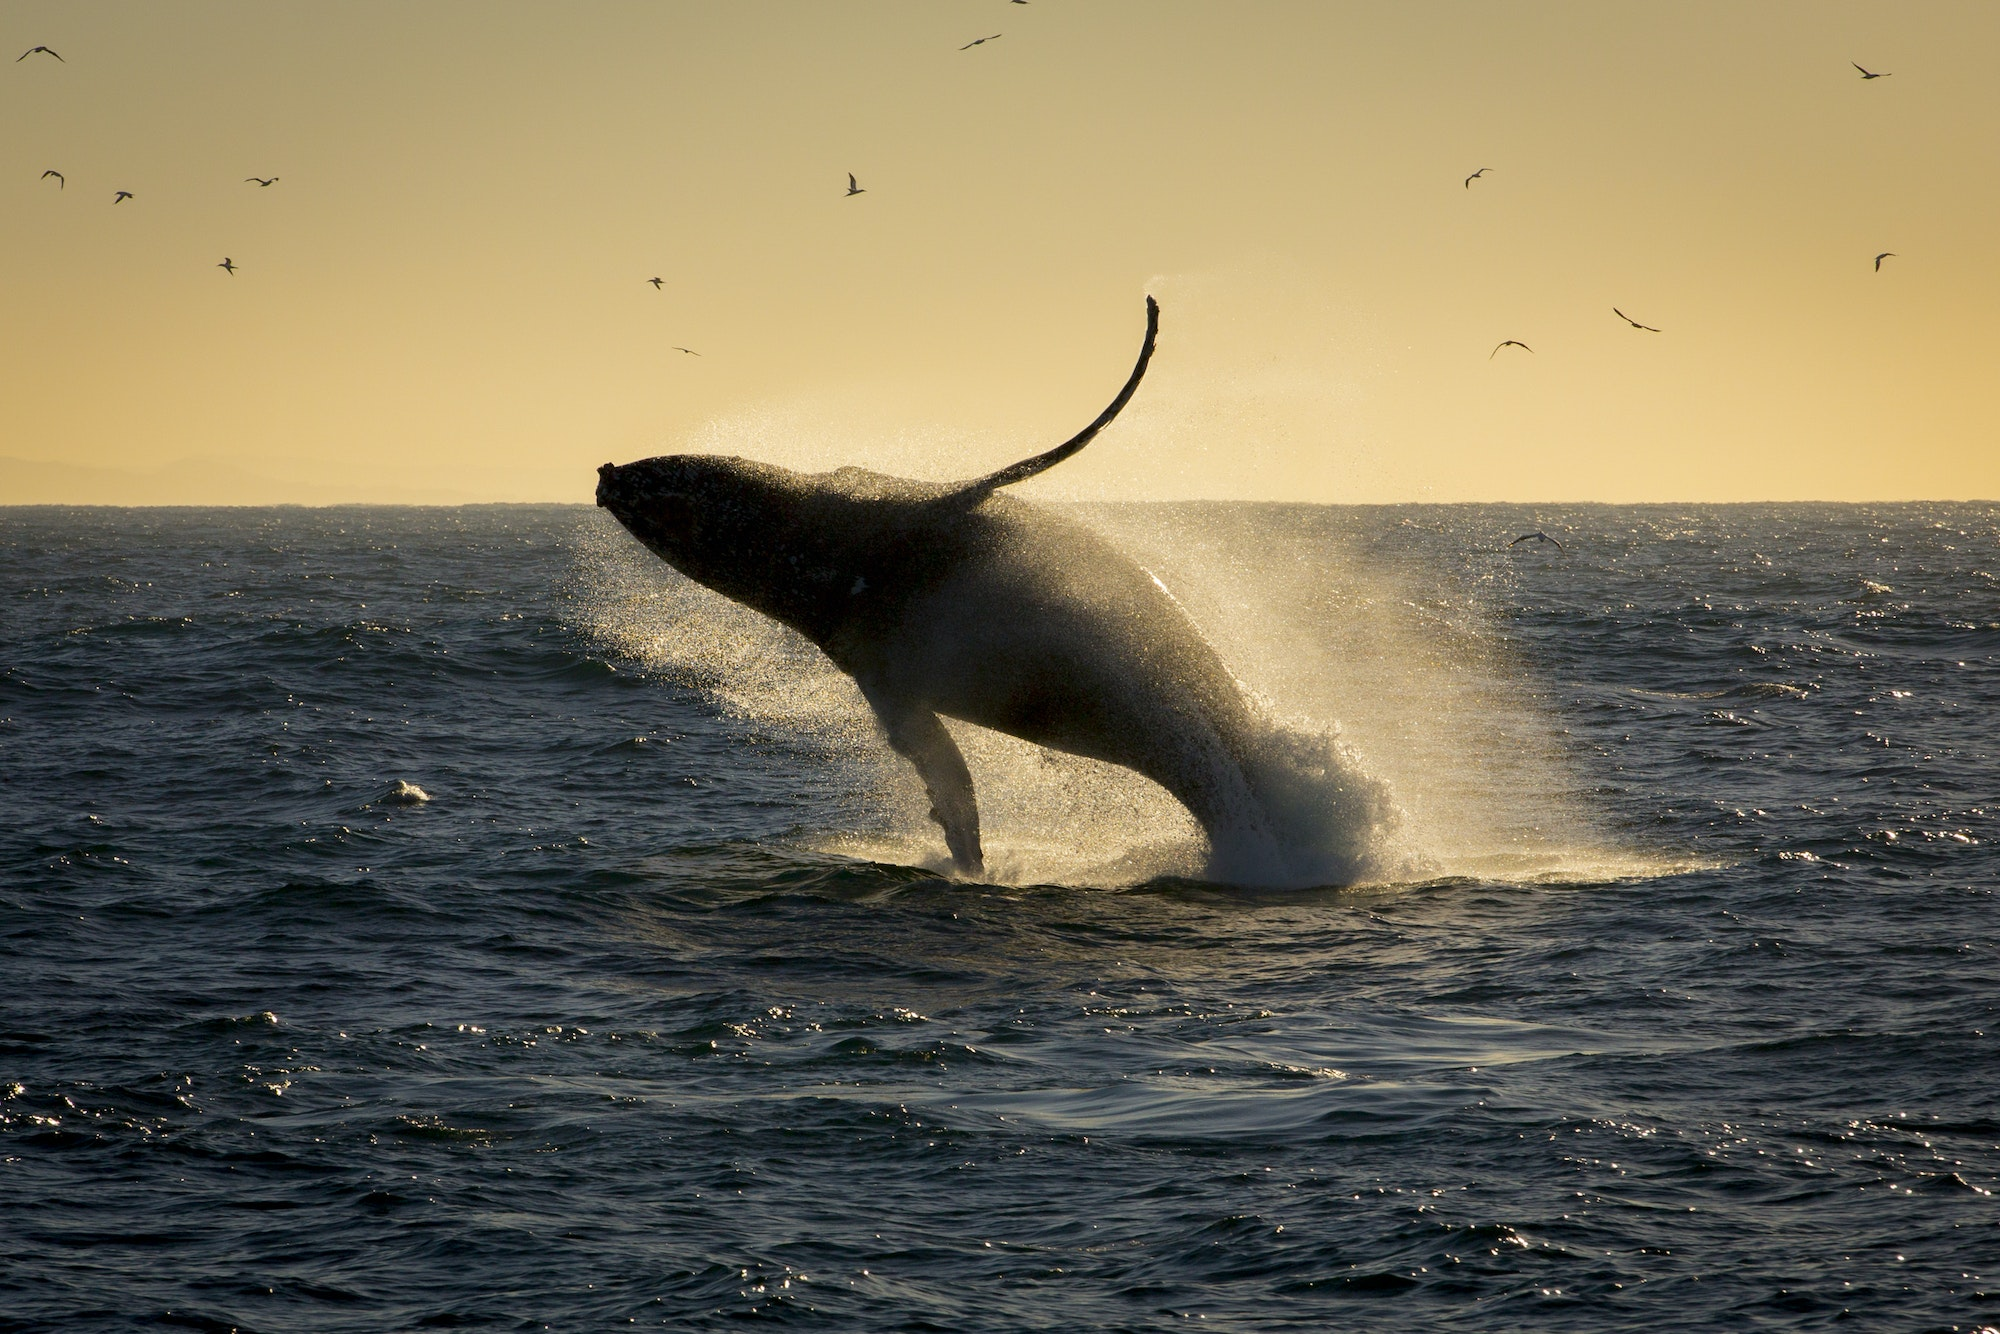 The best time for whale-watching in South Africa is from June to November along the Cape Peninsula.